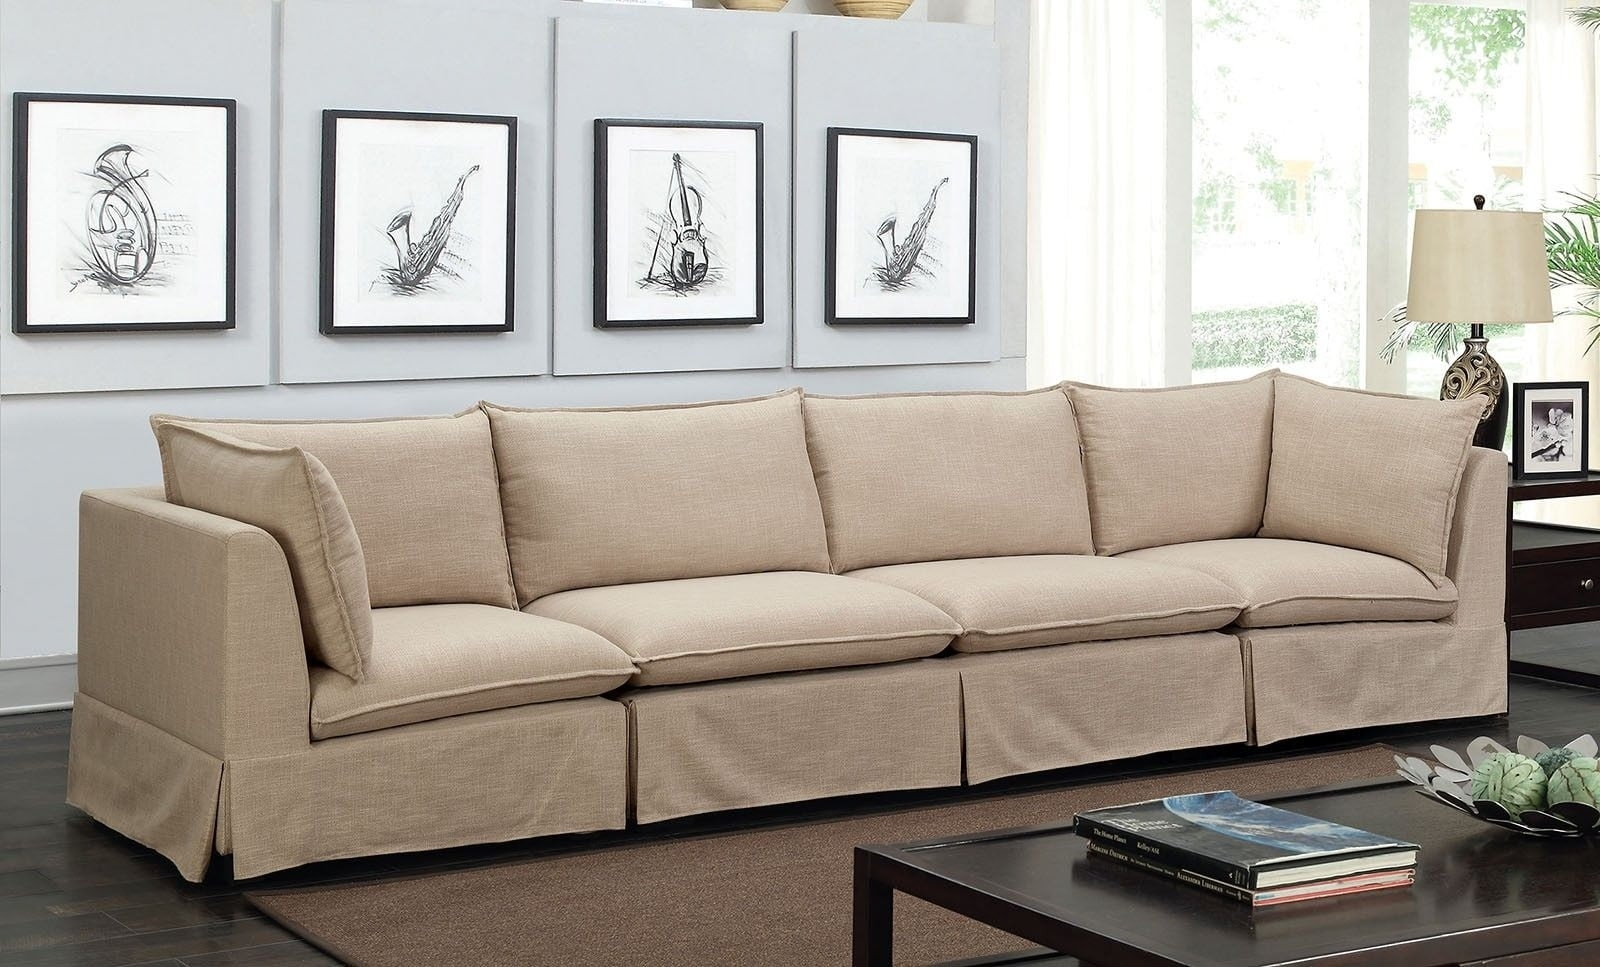 Joelle 3 Piece Beige Sectional From Furniture Of America   Coleman Throughout Adeline 3 Piece Sectionals (Image 16 of 25)